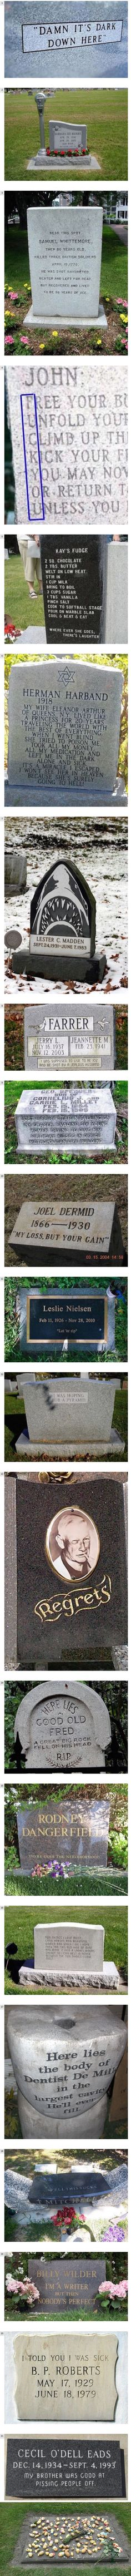 These 21 gravestones that definitely got the last laugh